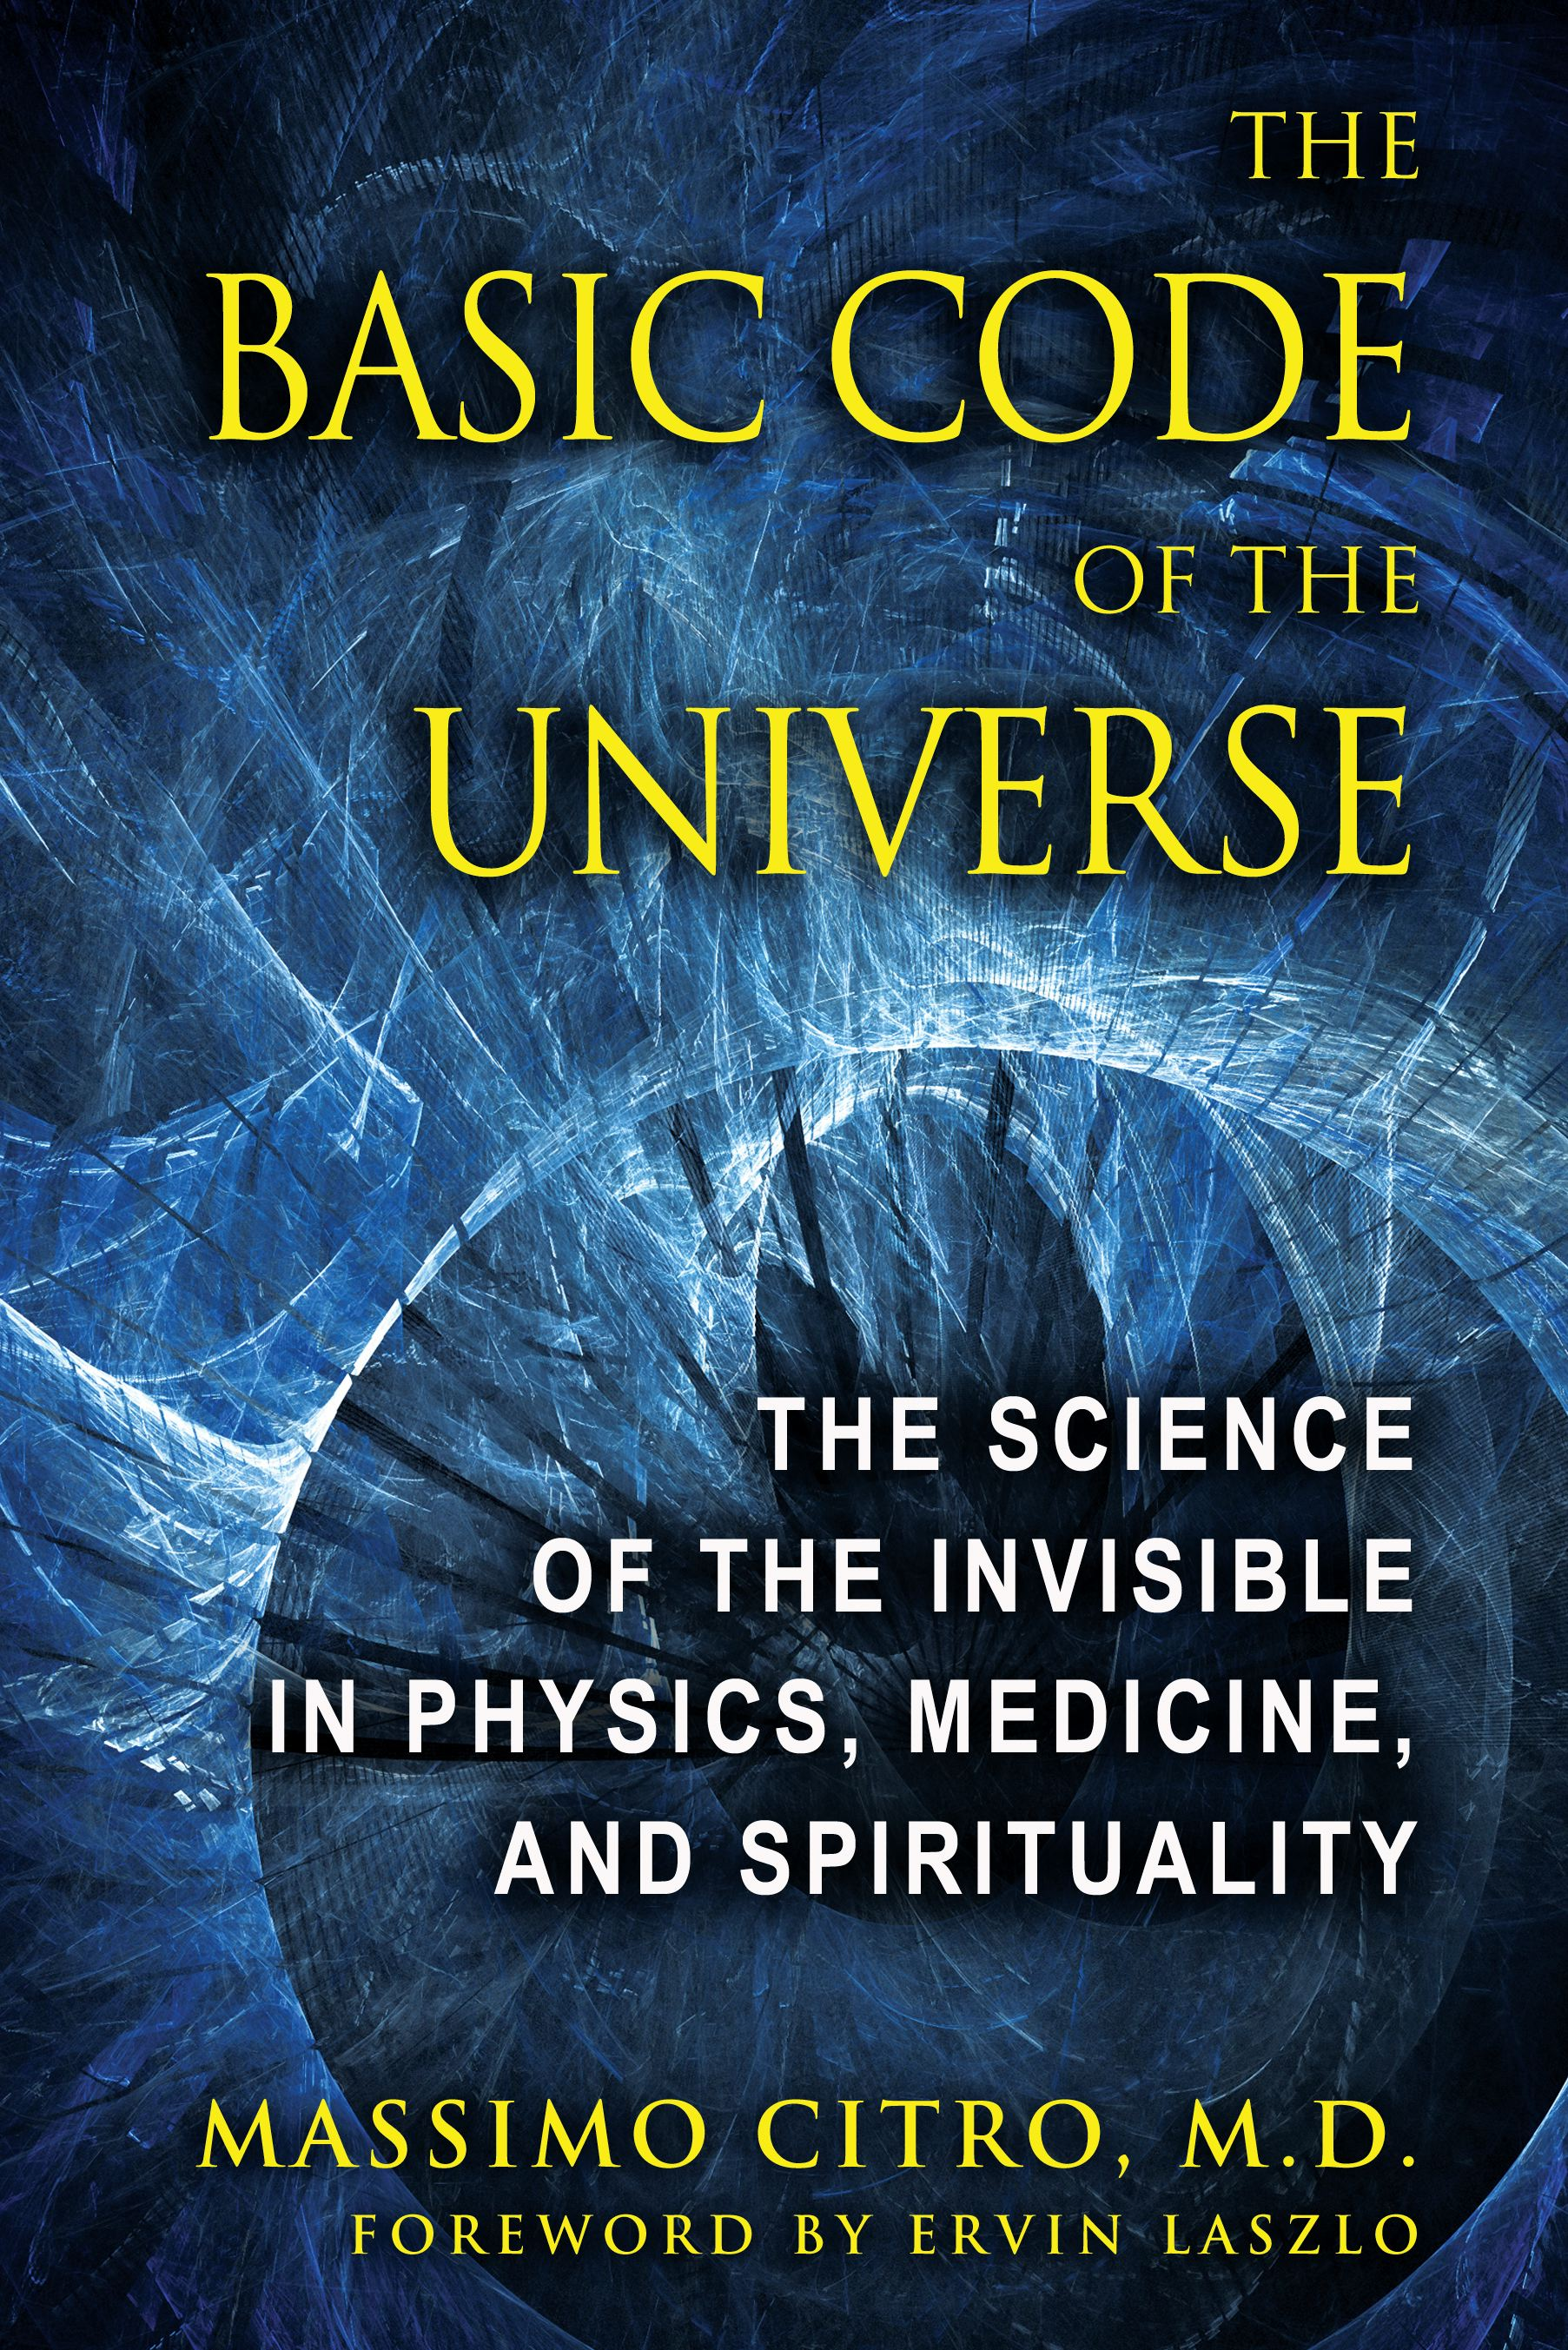 The-basic-code-of-the-universe-9781594773914_hr